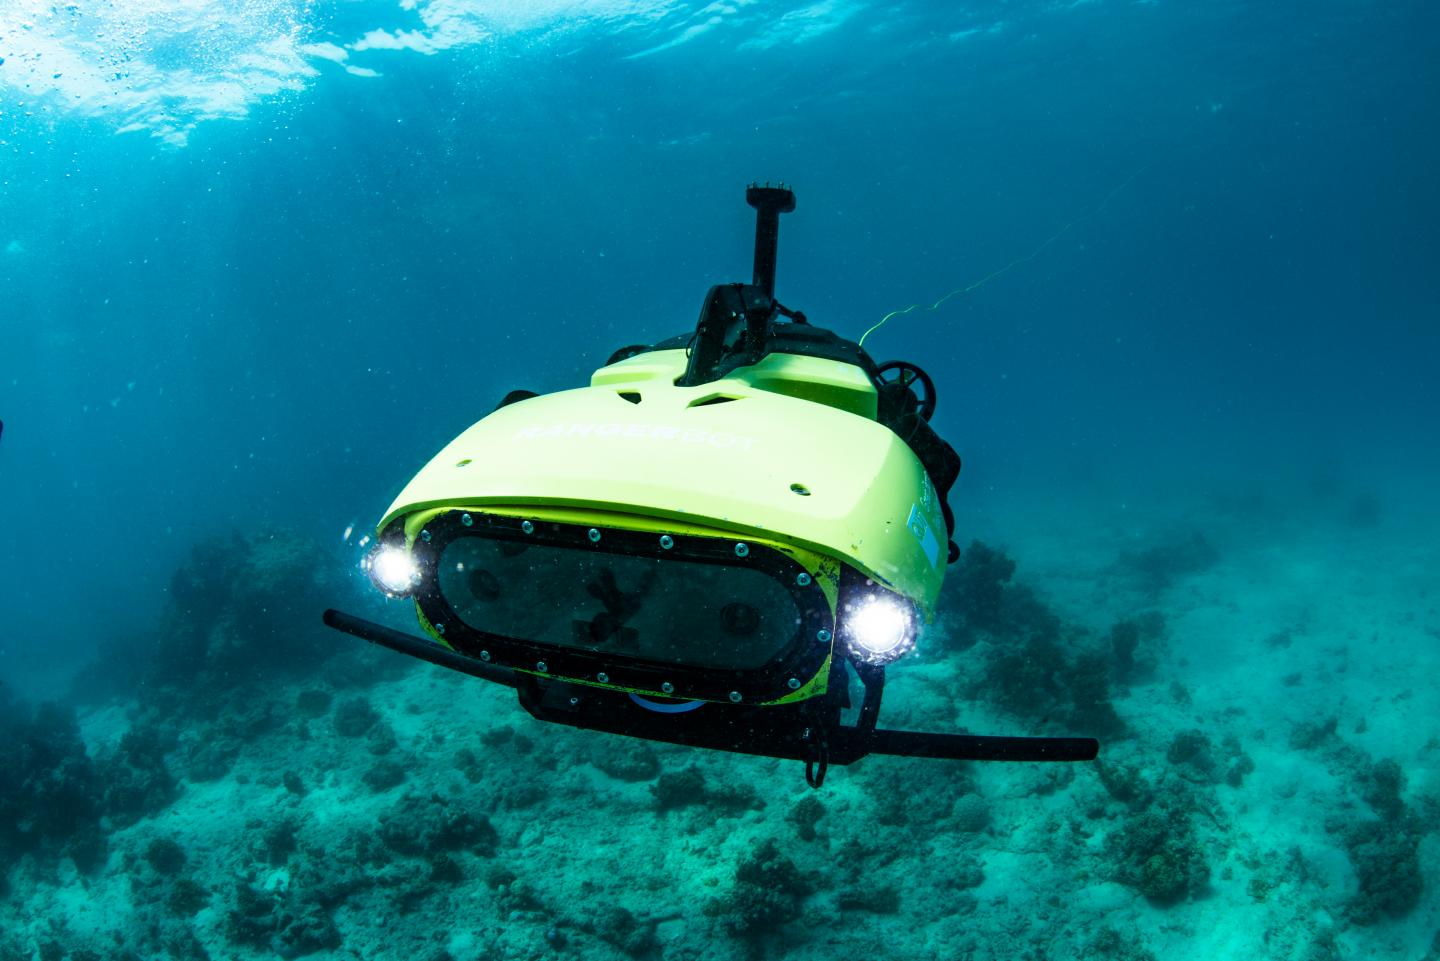 This robot plants heat-resistant corals to save endangered reefs